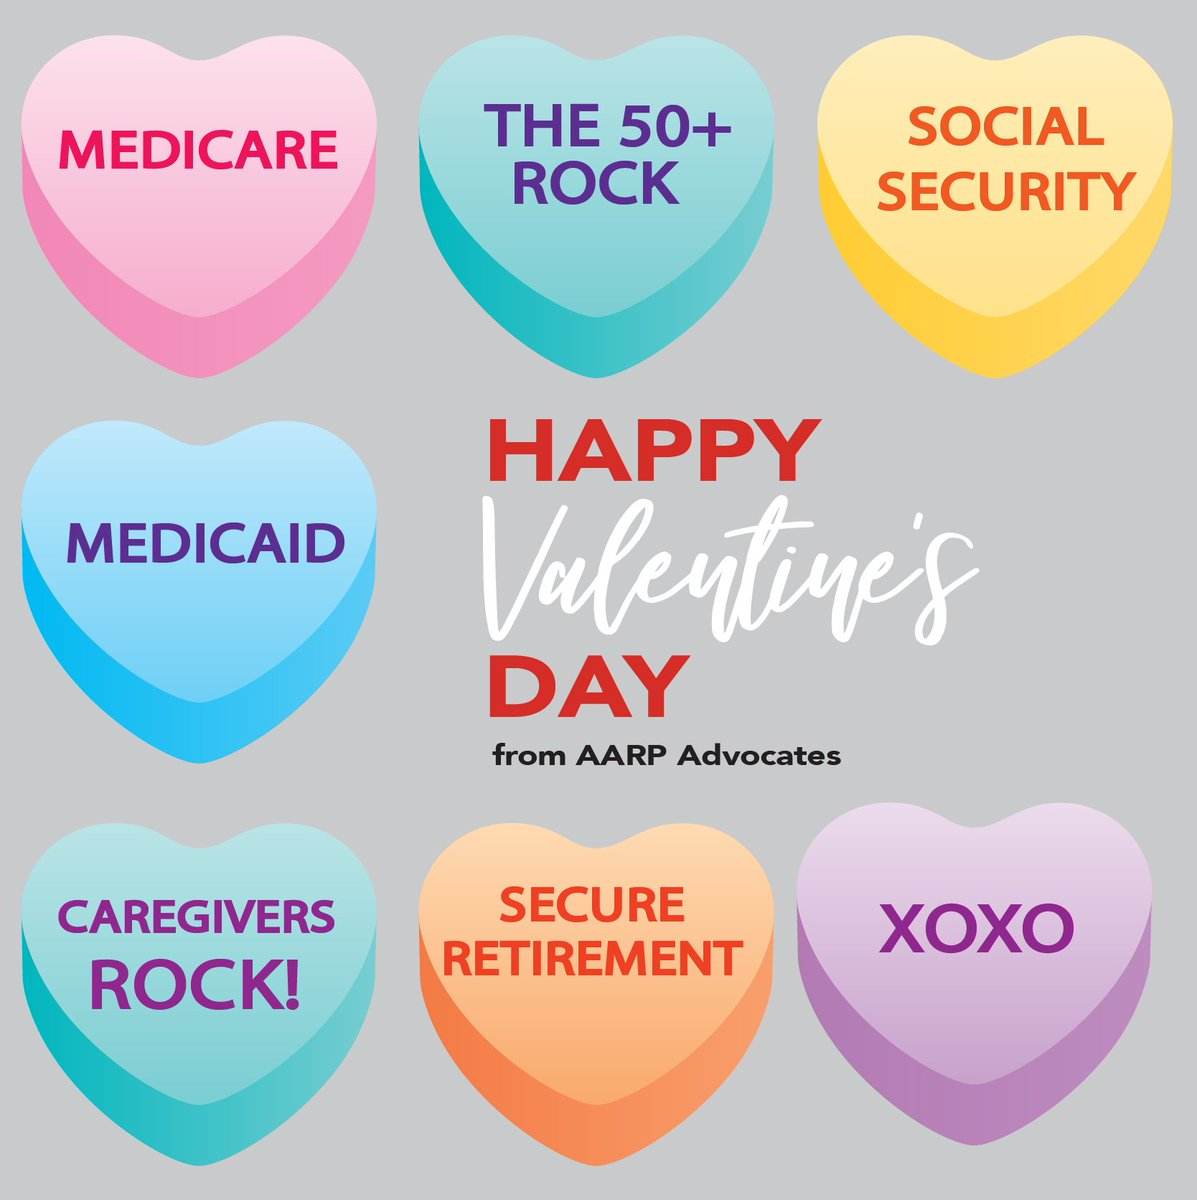 True love is our members and volunteers joining us every day to fight for the issues that matter most to Americans 50+. Our hearts are full 🥰  Happy #ValentinesDay to all!